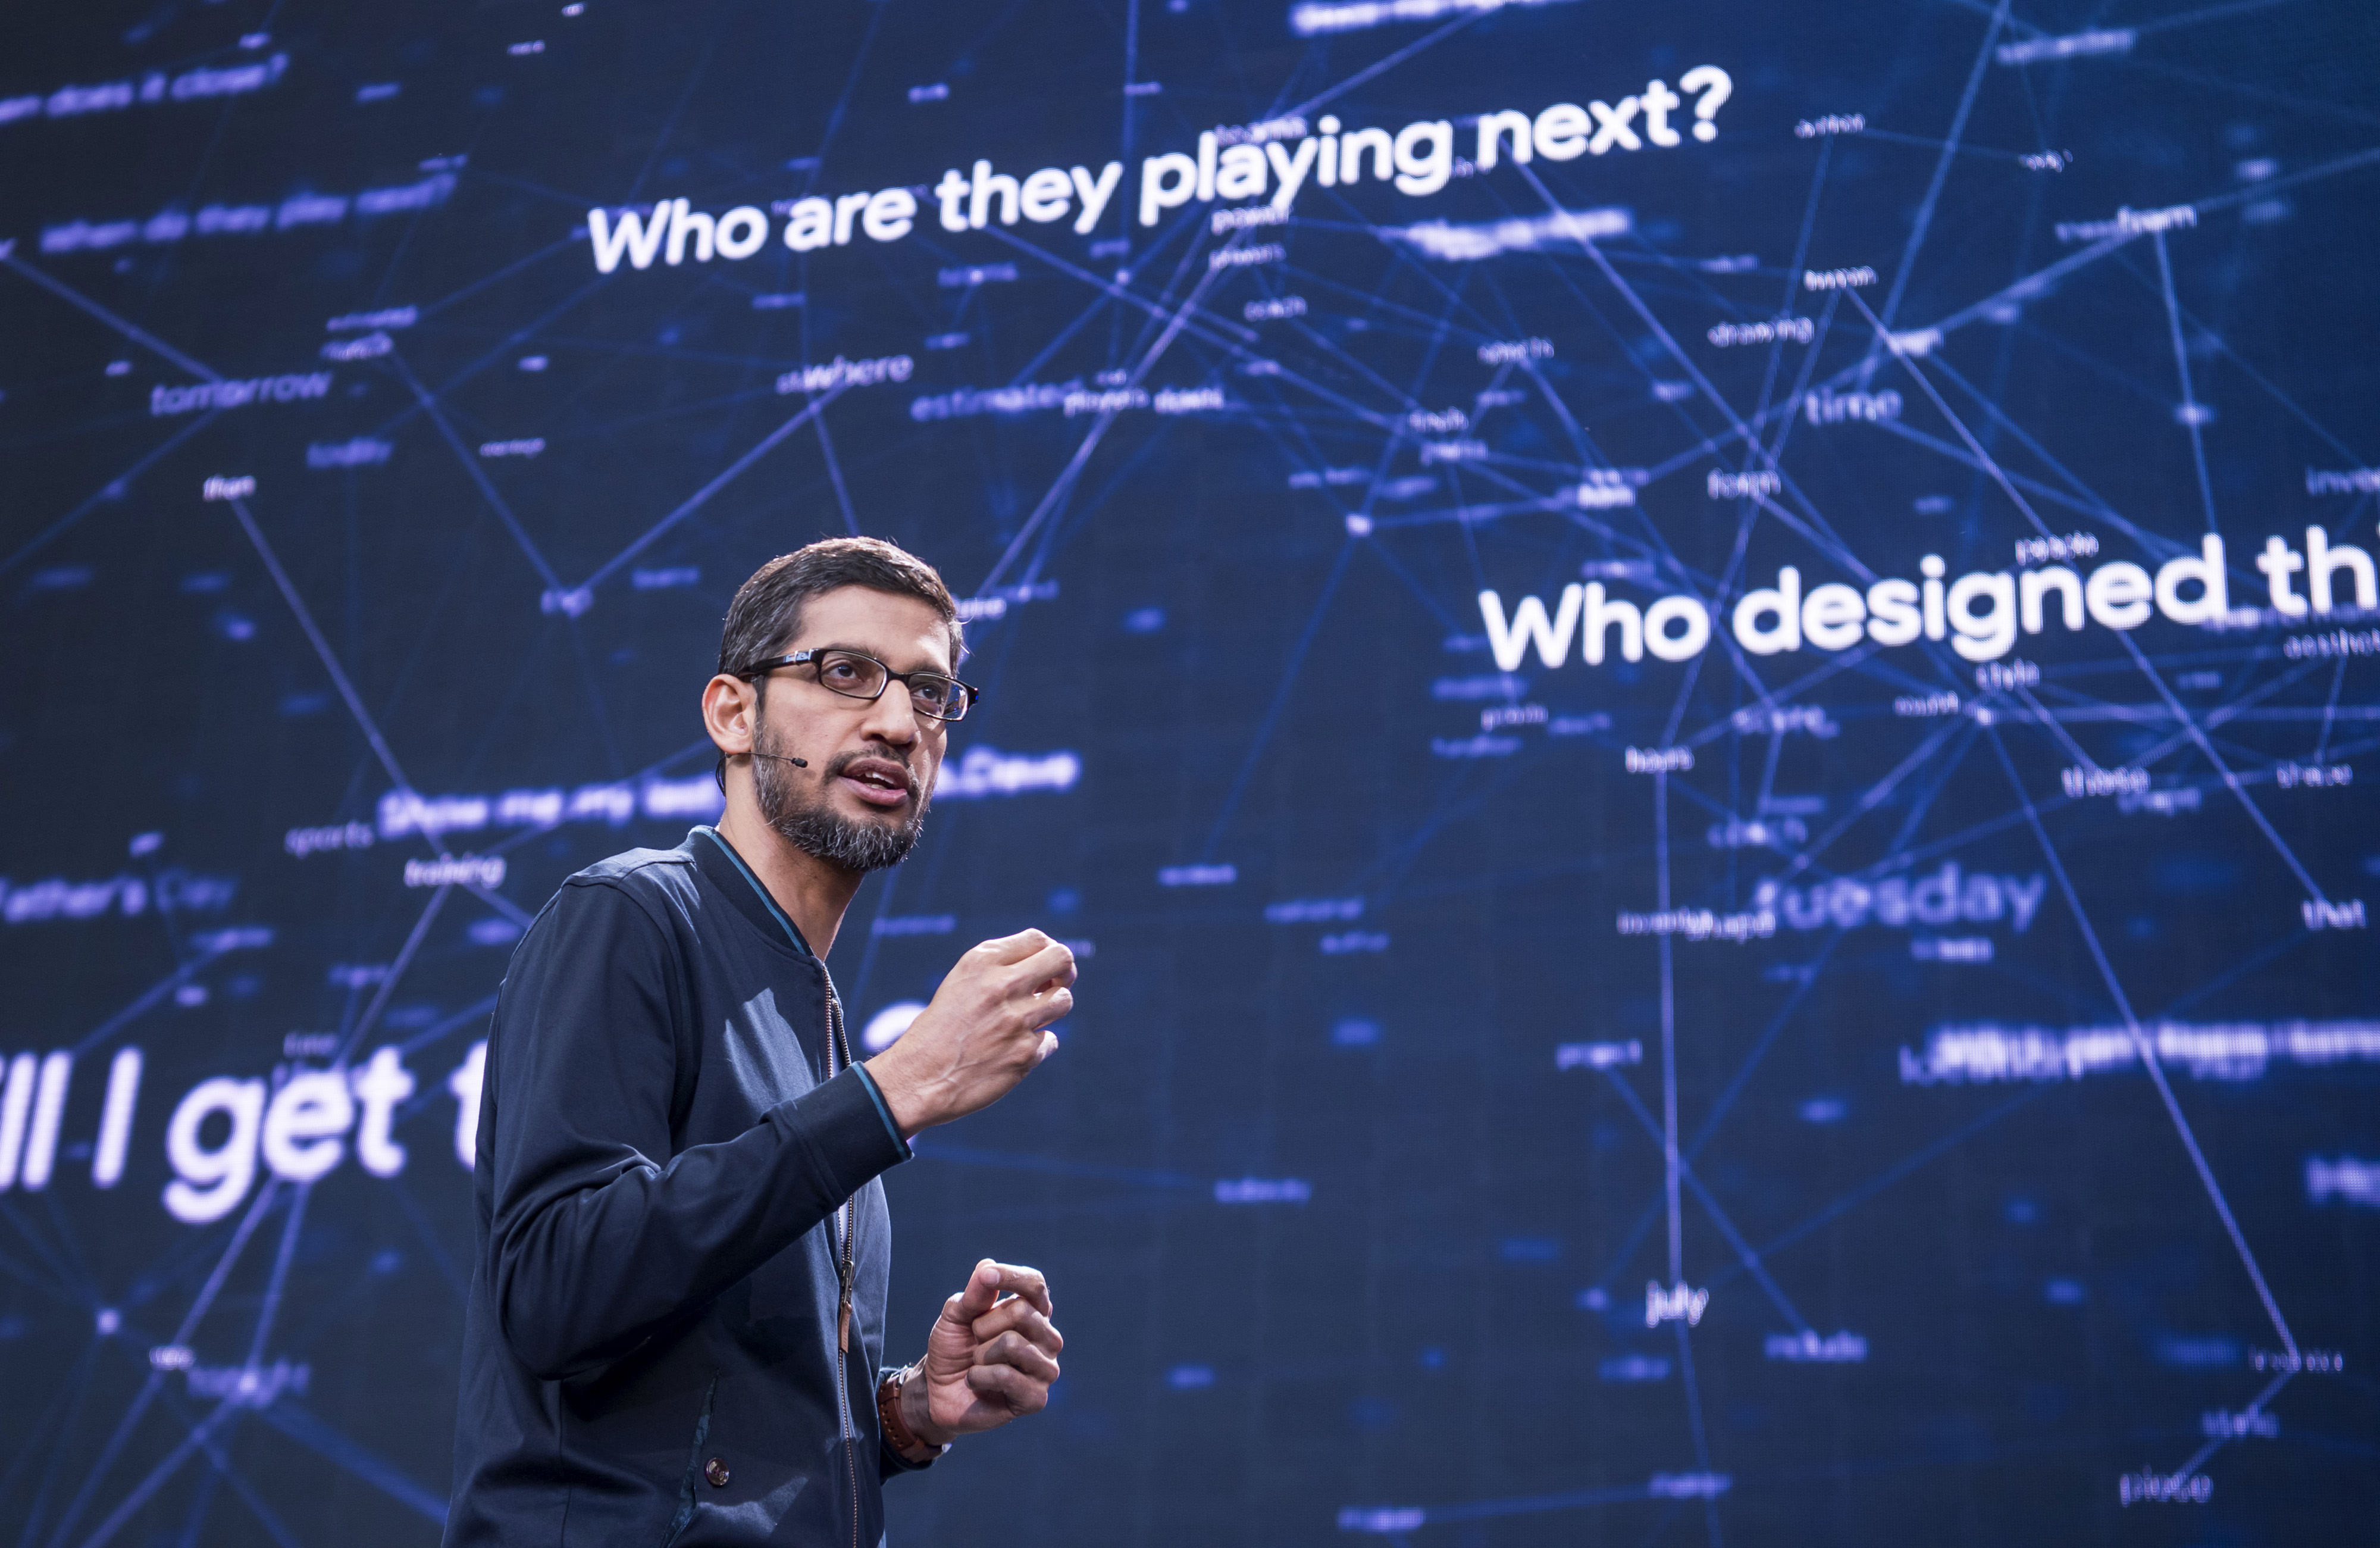 Sundar Pichai, chief executive officer of Google Inc., speaks during the Google I/O Annual Developers Conference in Mountain View, California on Wednesday, May 18, 2016.